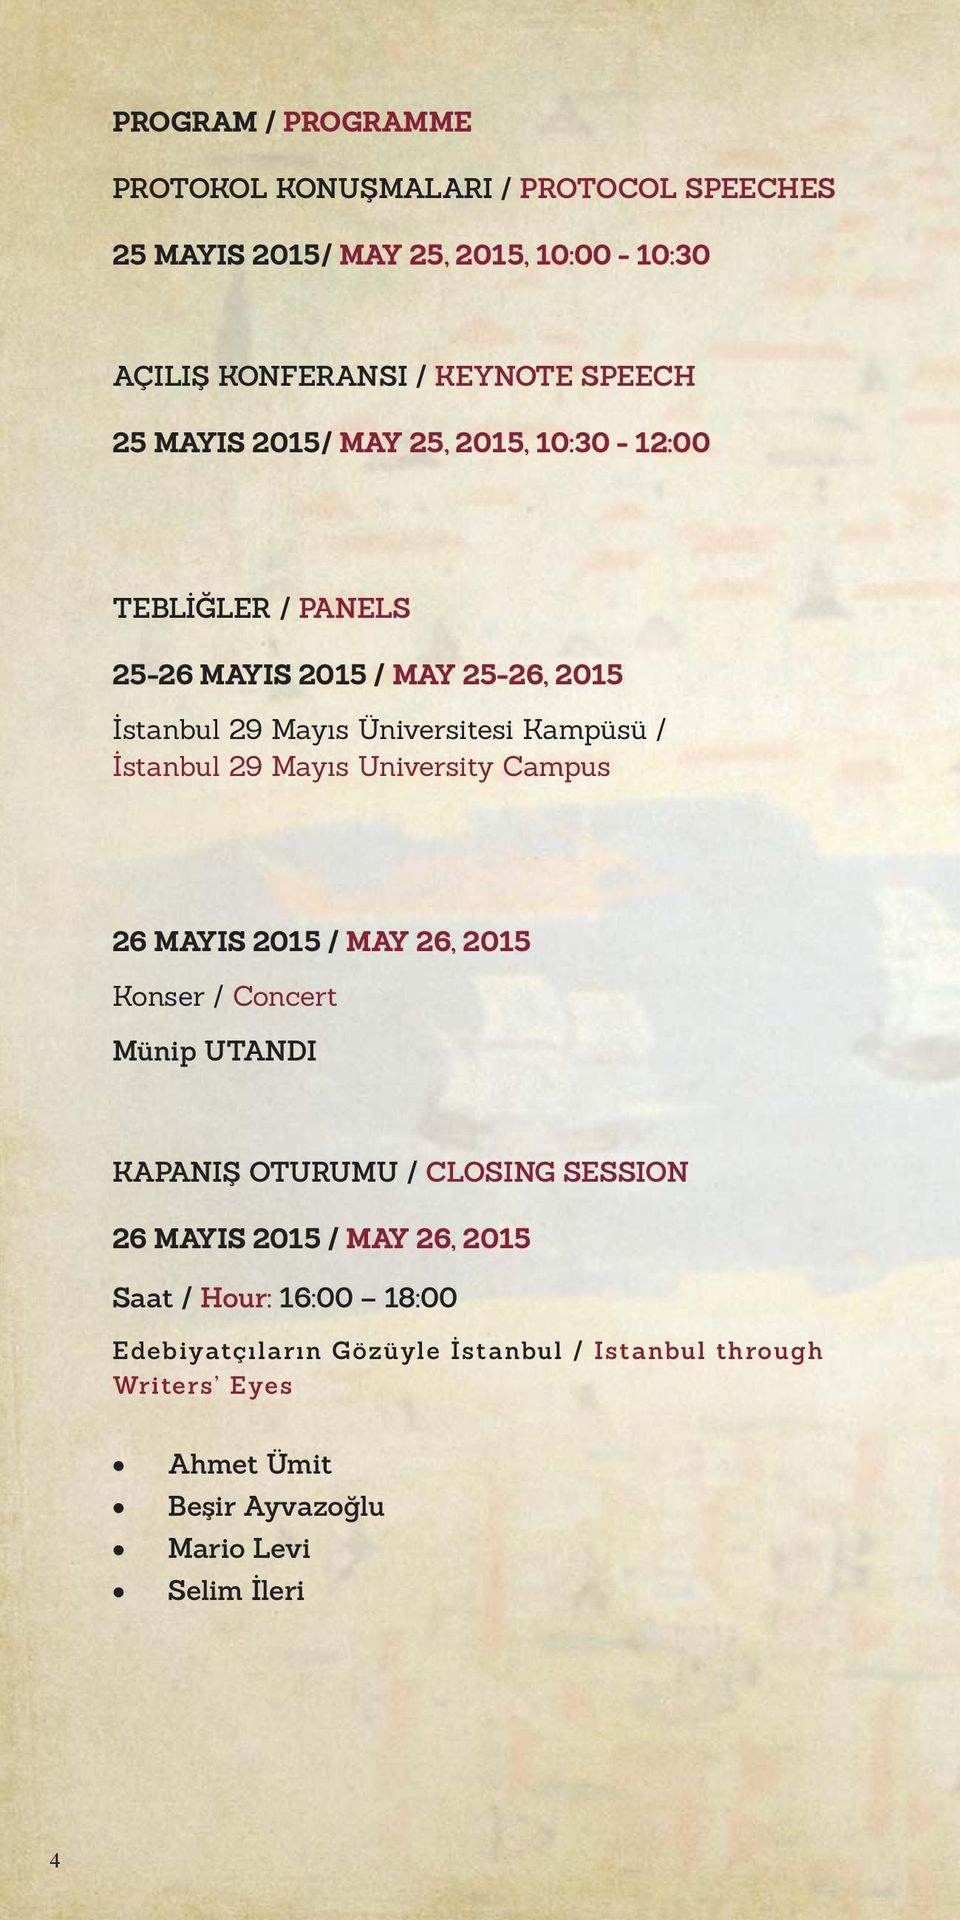 29 Mayıs University Campus 26 MAYIS 2015 / MAY 26, 2015 Konser / Concert Münip UTANDI KAPANIŞ OTURUMU / CLOSING SESSION 26 MAYIS 2015 / MAY